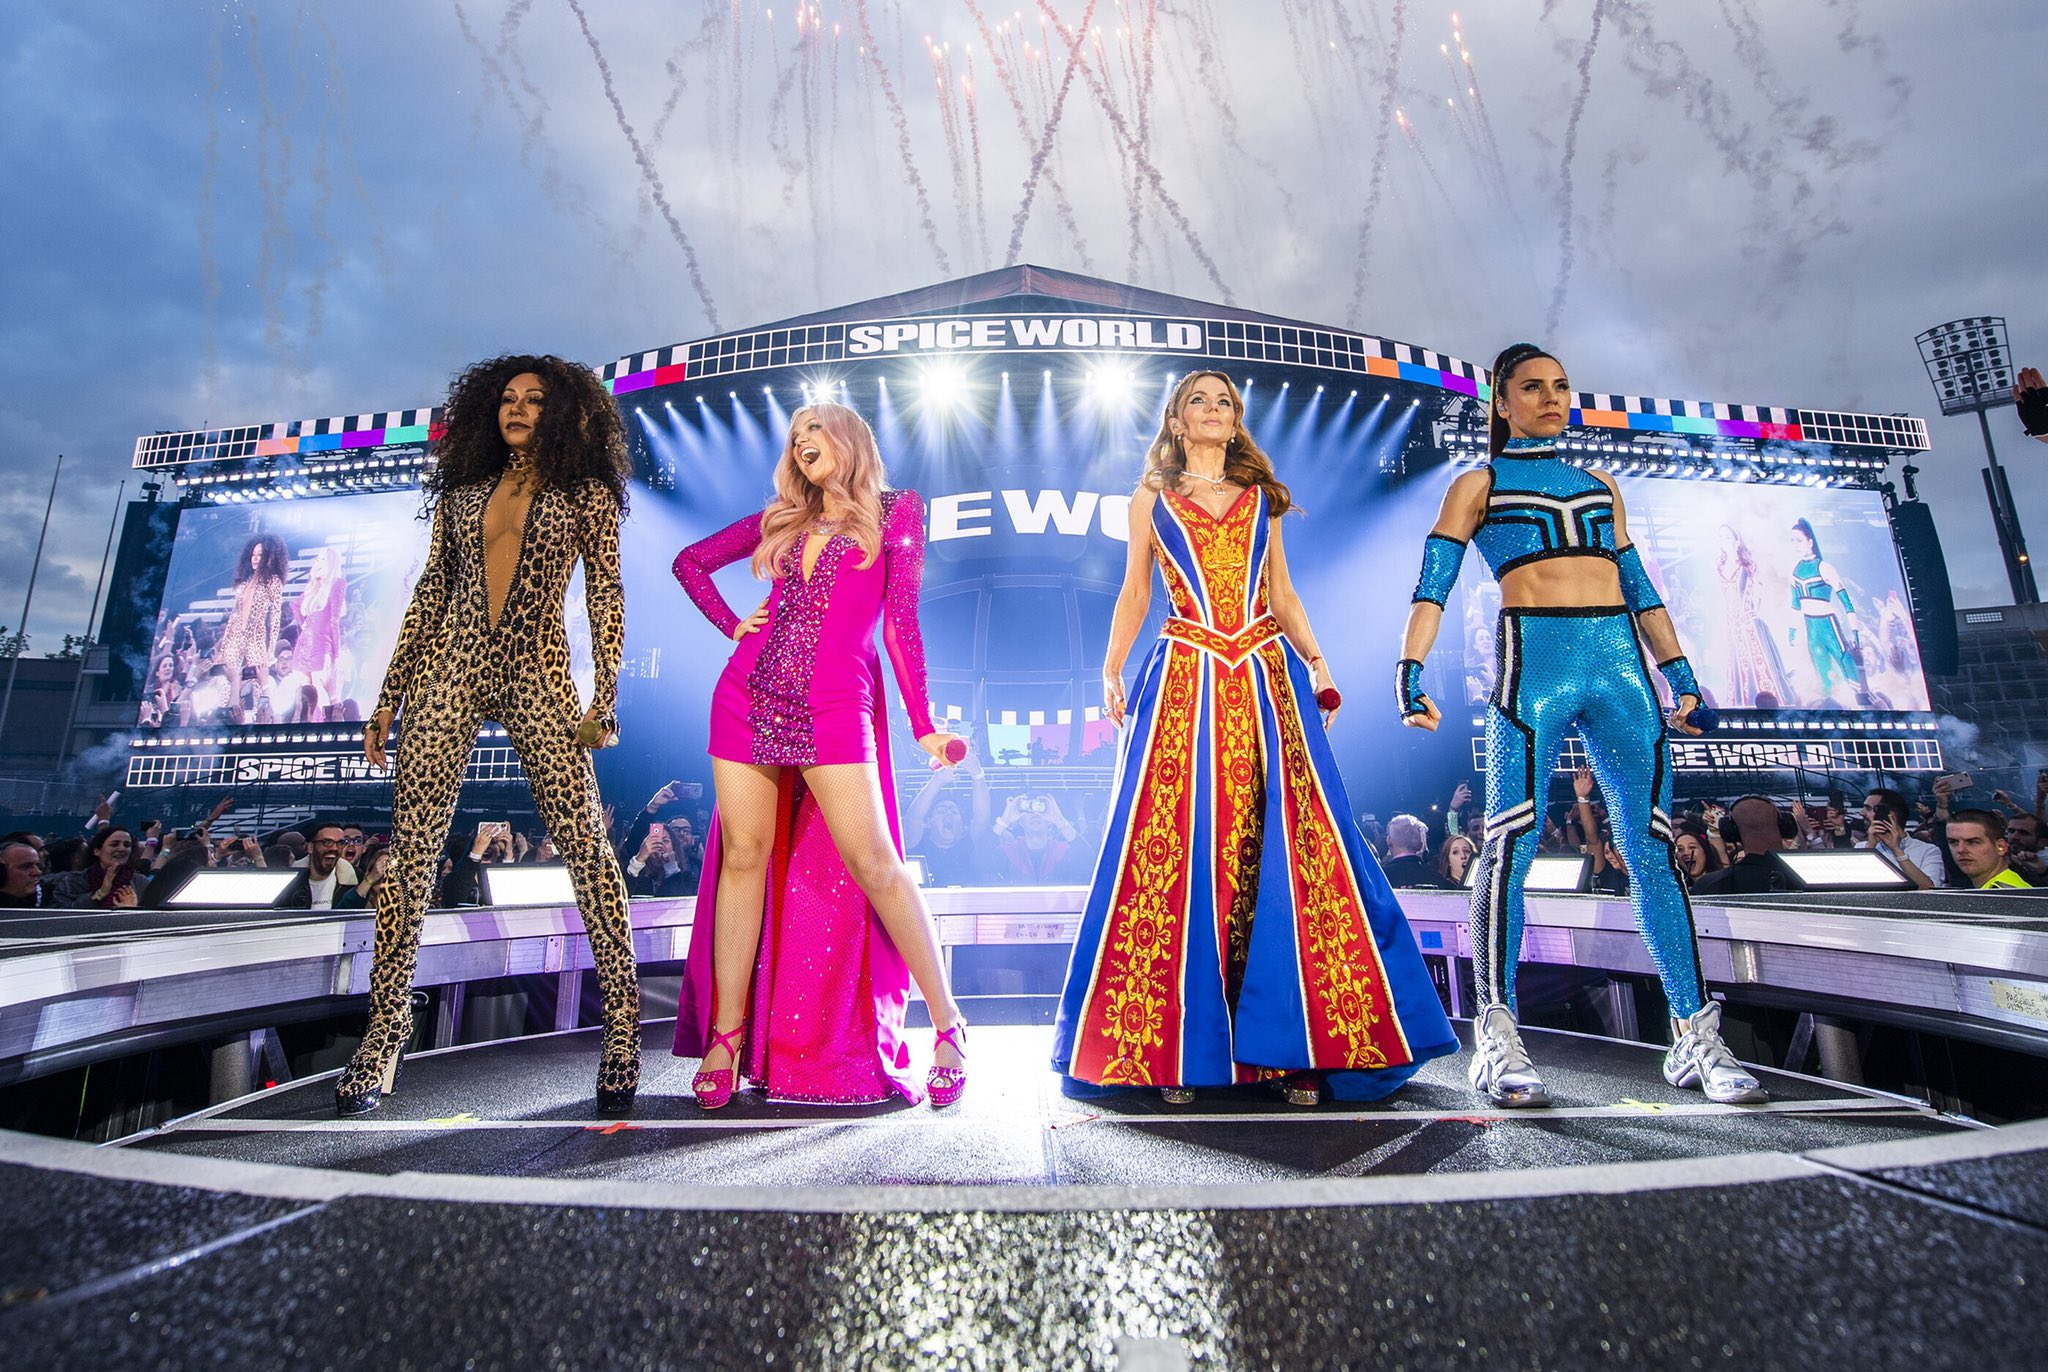 The Spice Girls on May 24, 2019 in Dublin, photo by Andrew Timms